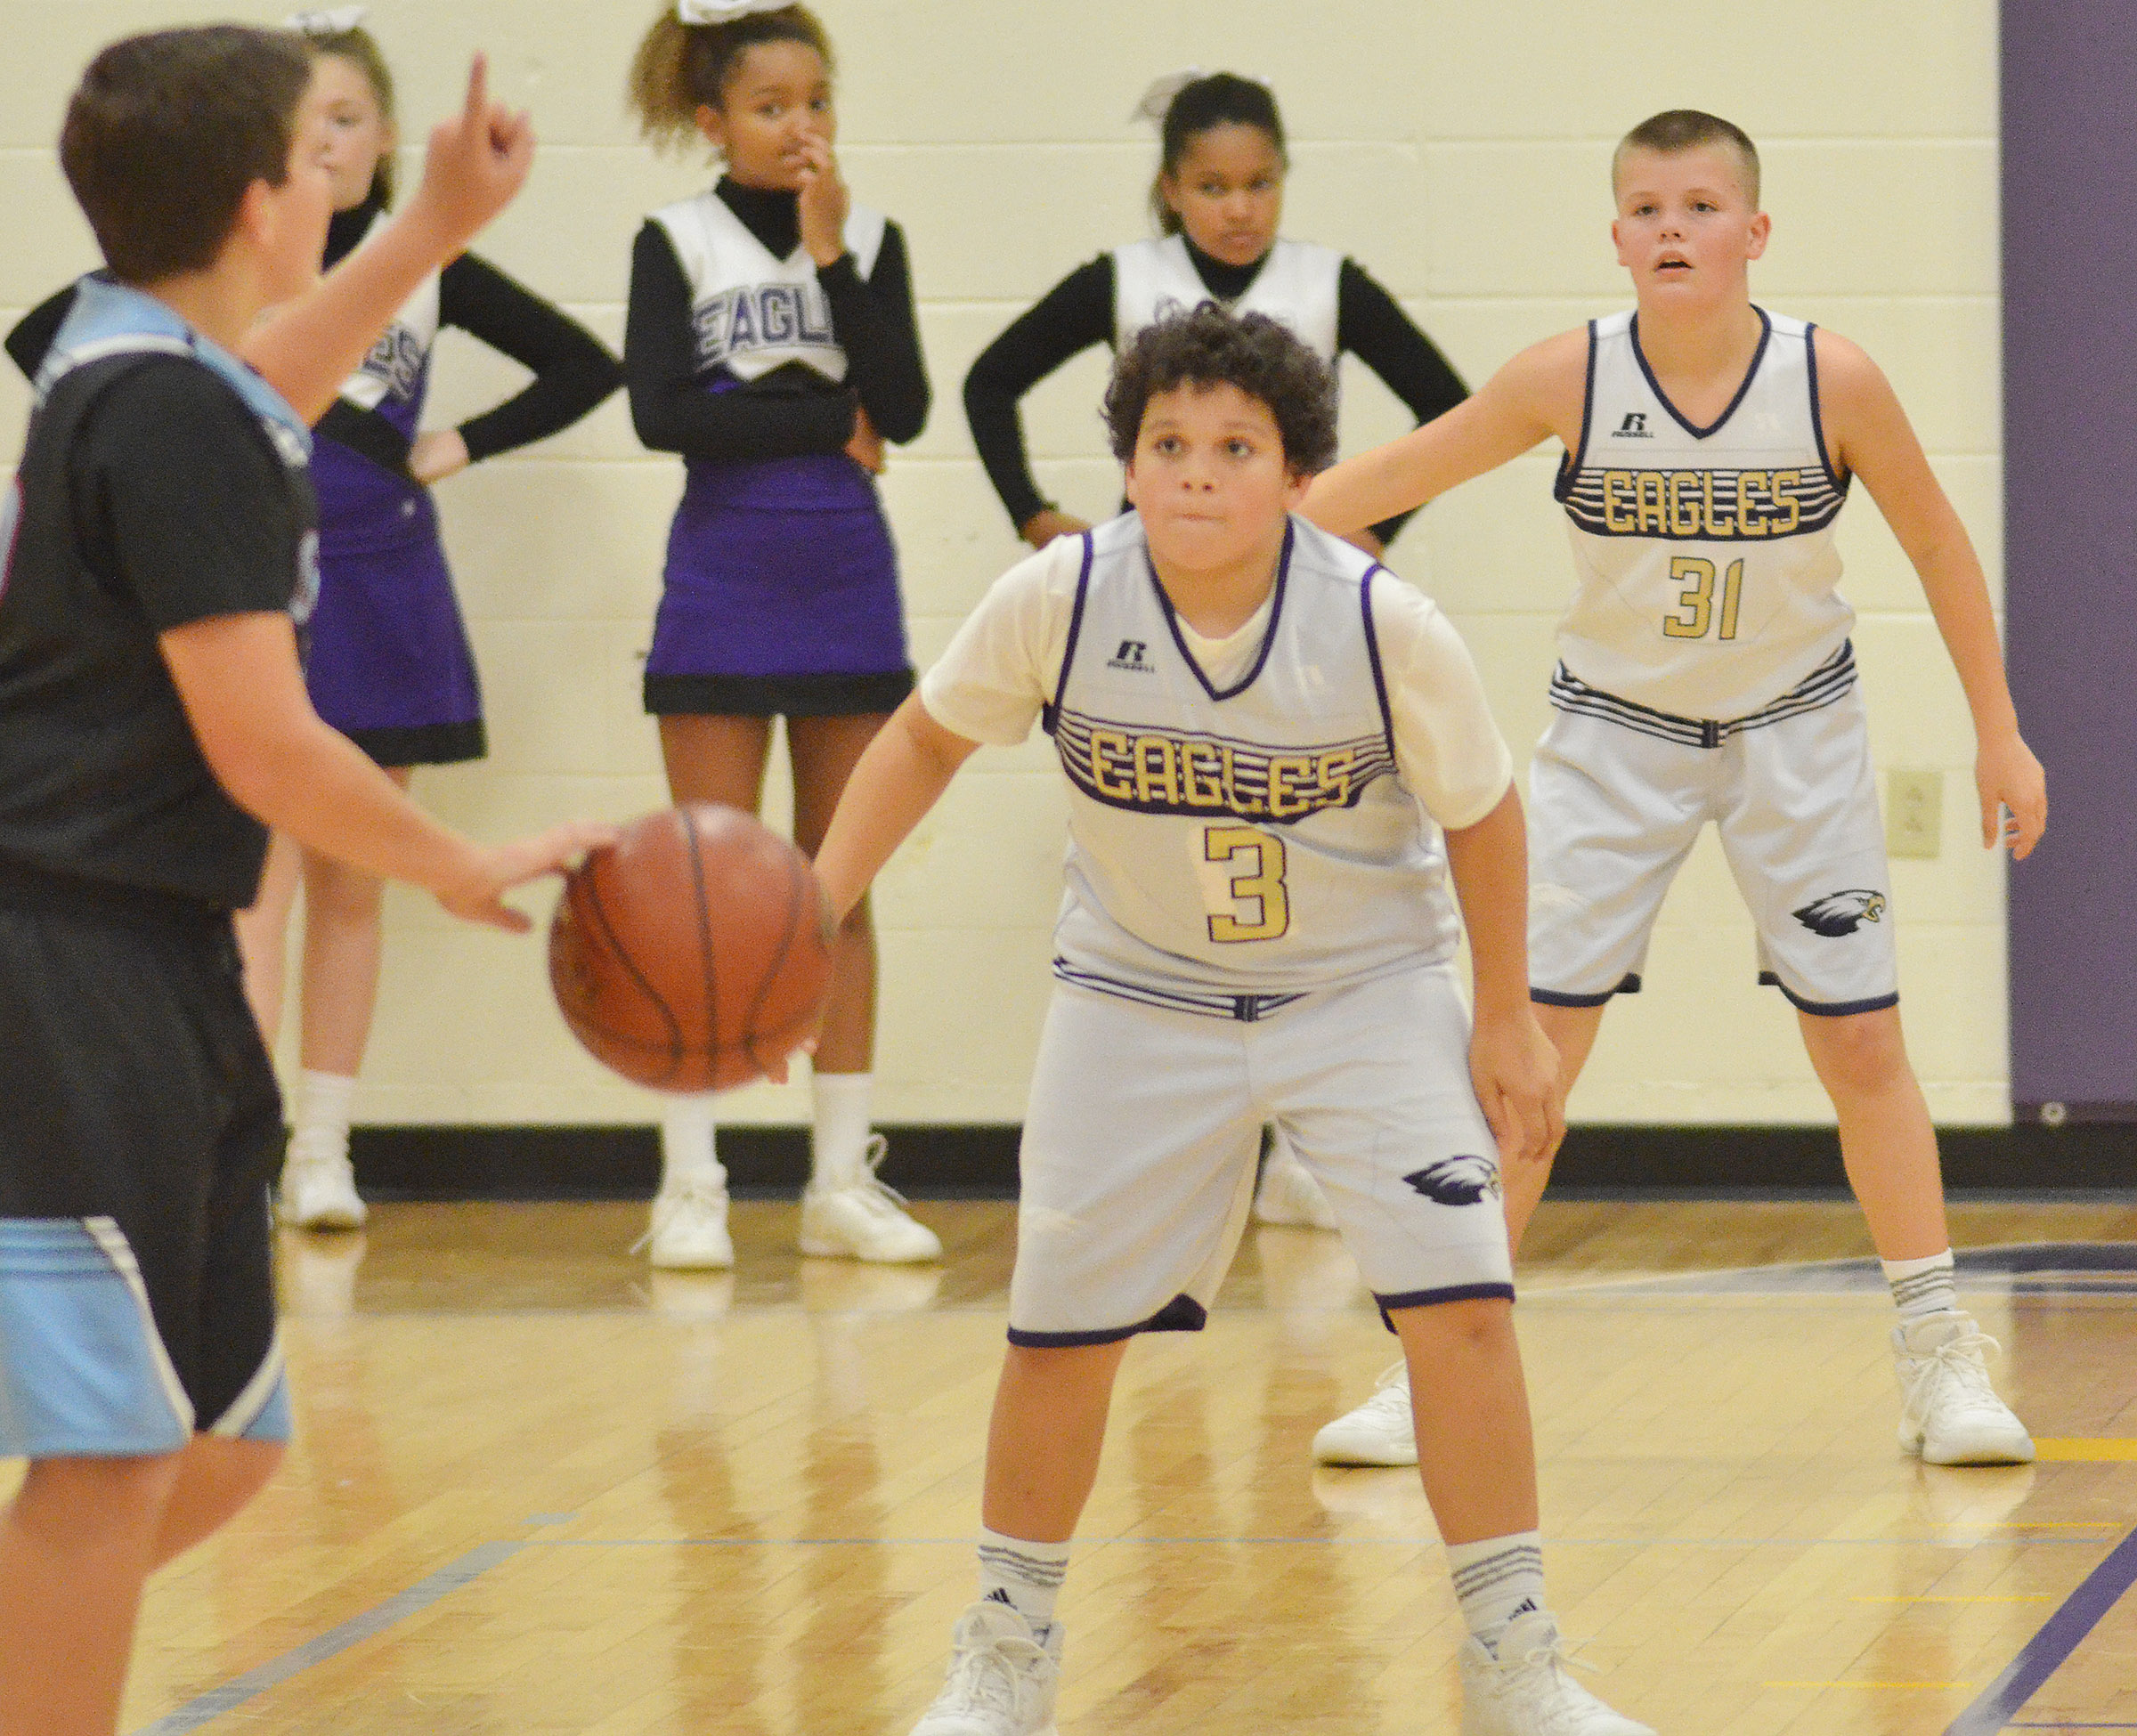 CMS seventh-graders Kaydon Taylor, at left, and Konner Forbis play defense.